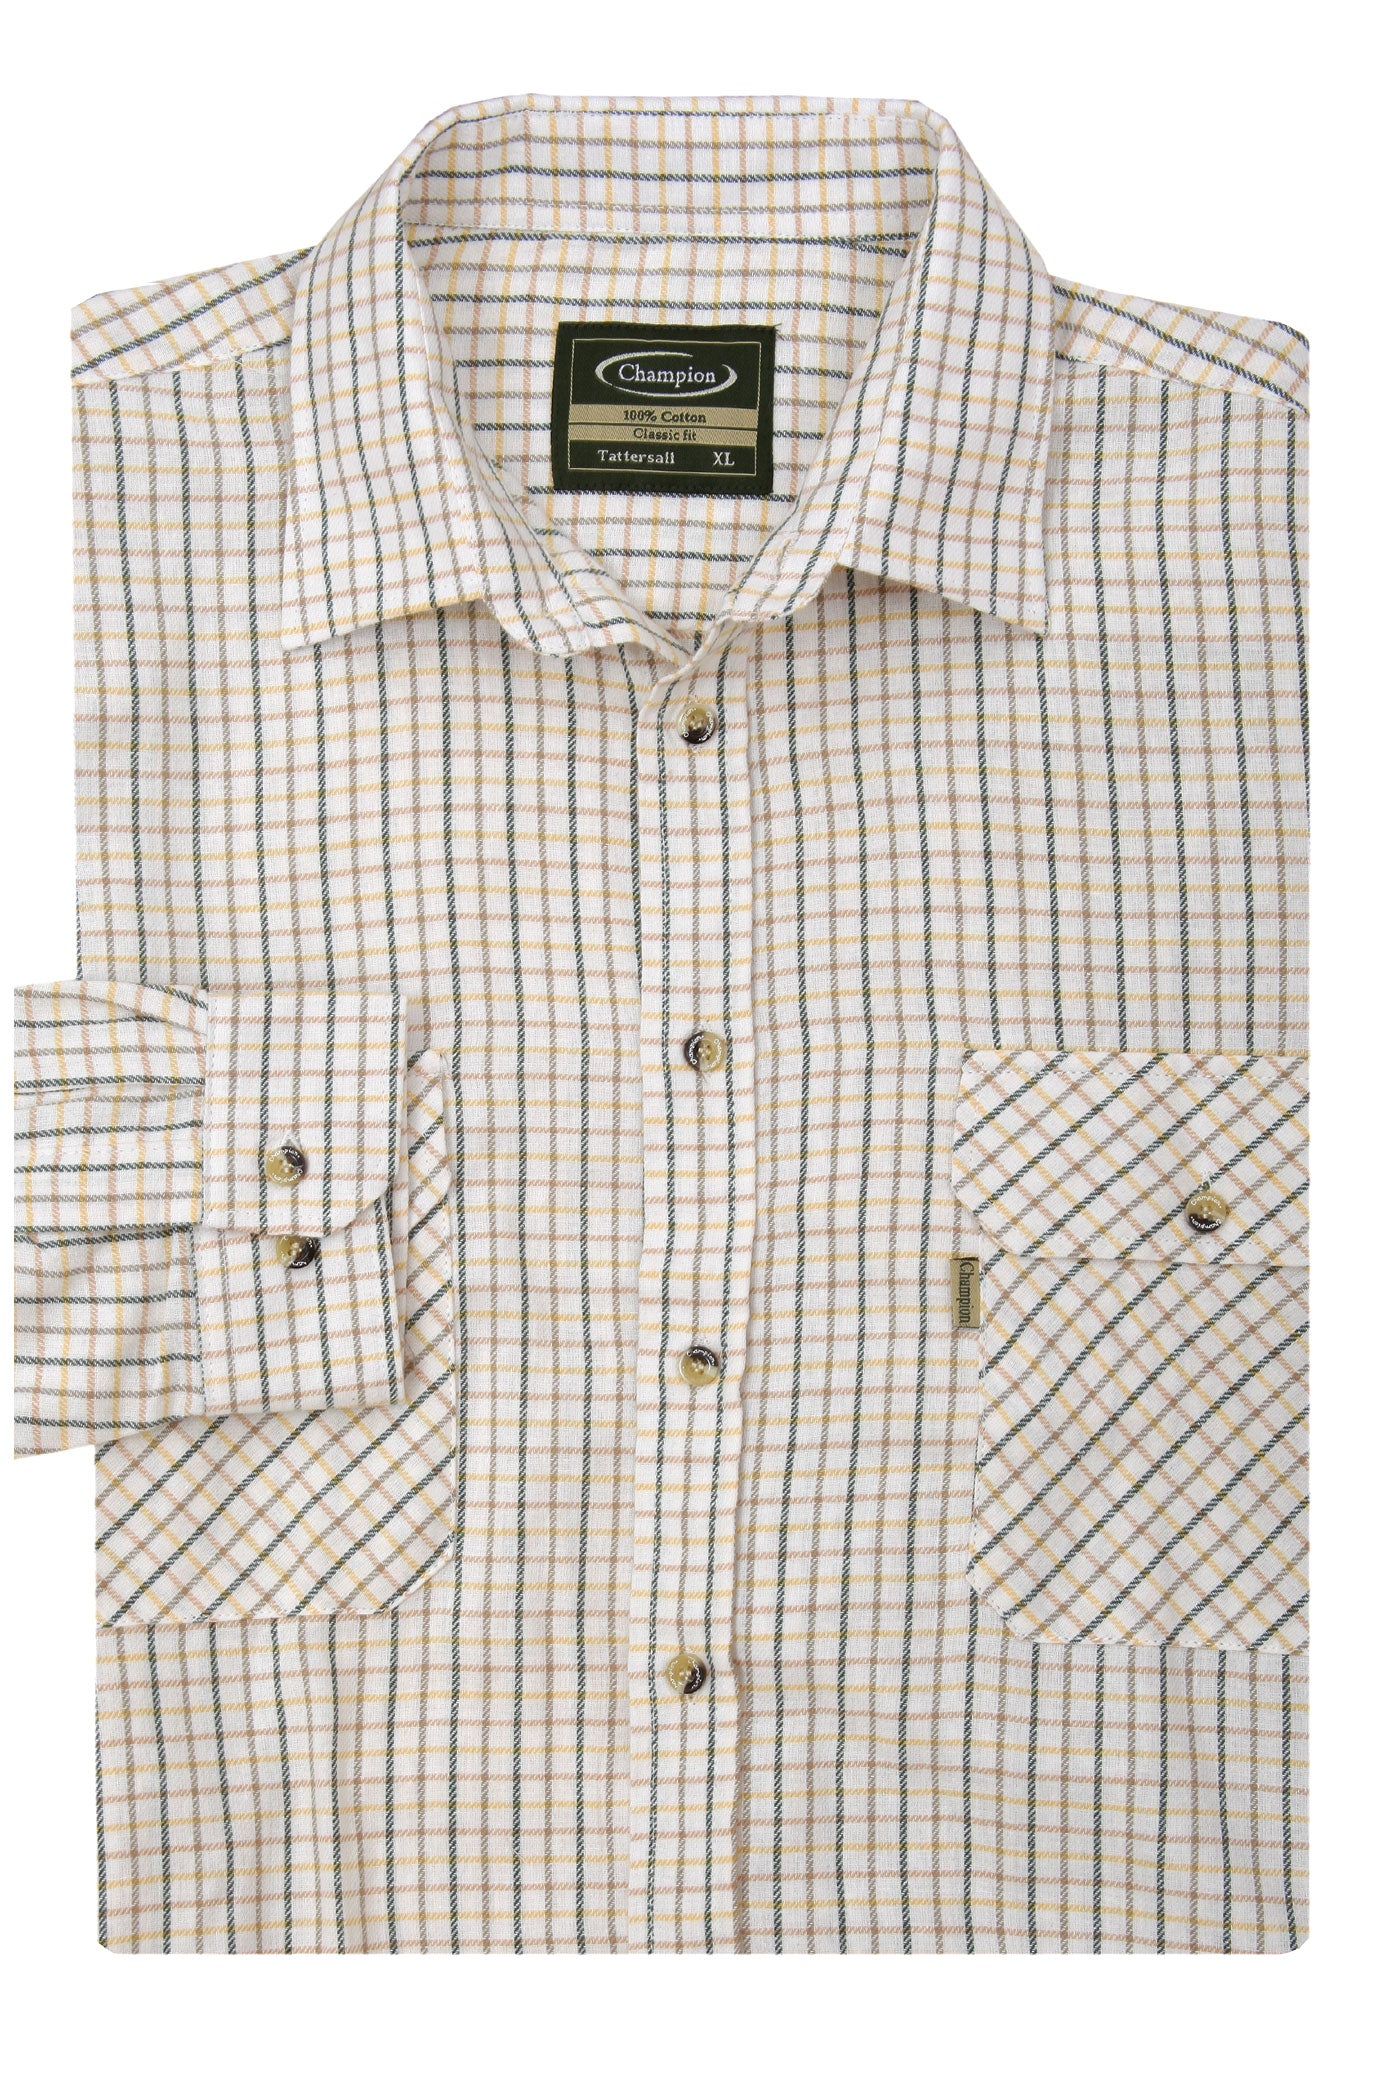 green brown Champion Tattersall Shirt, the classic country check shirt